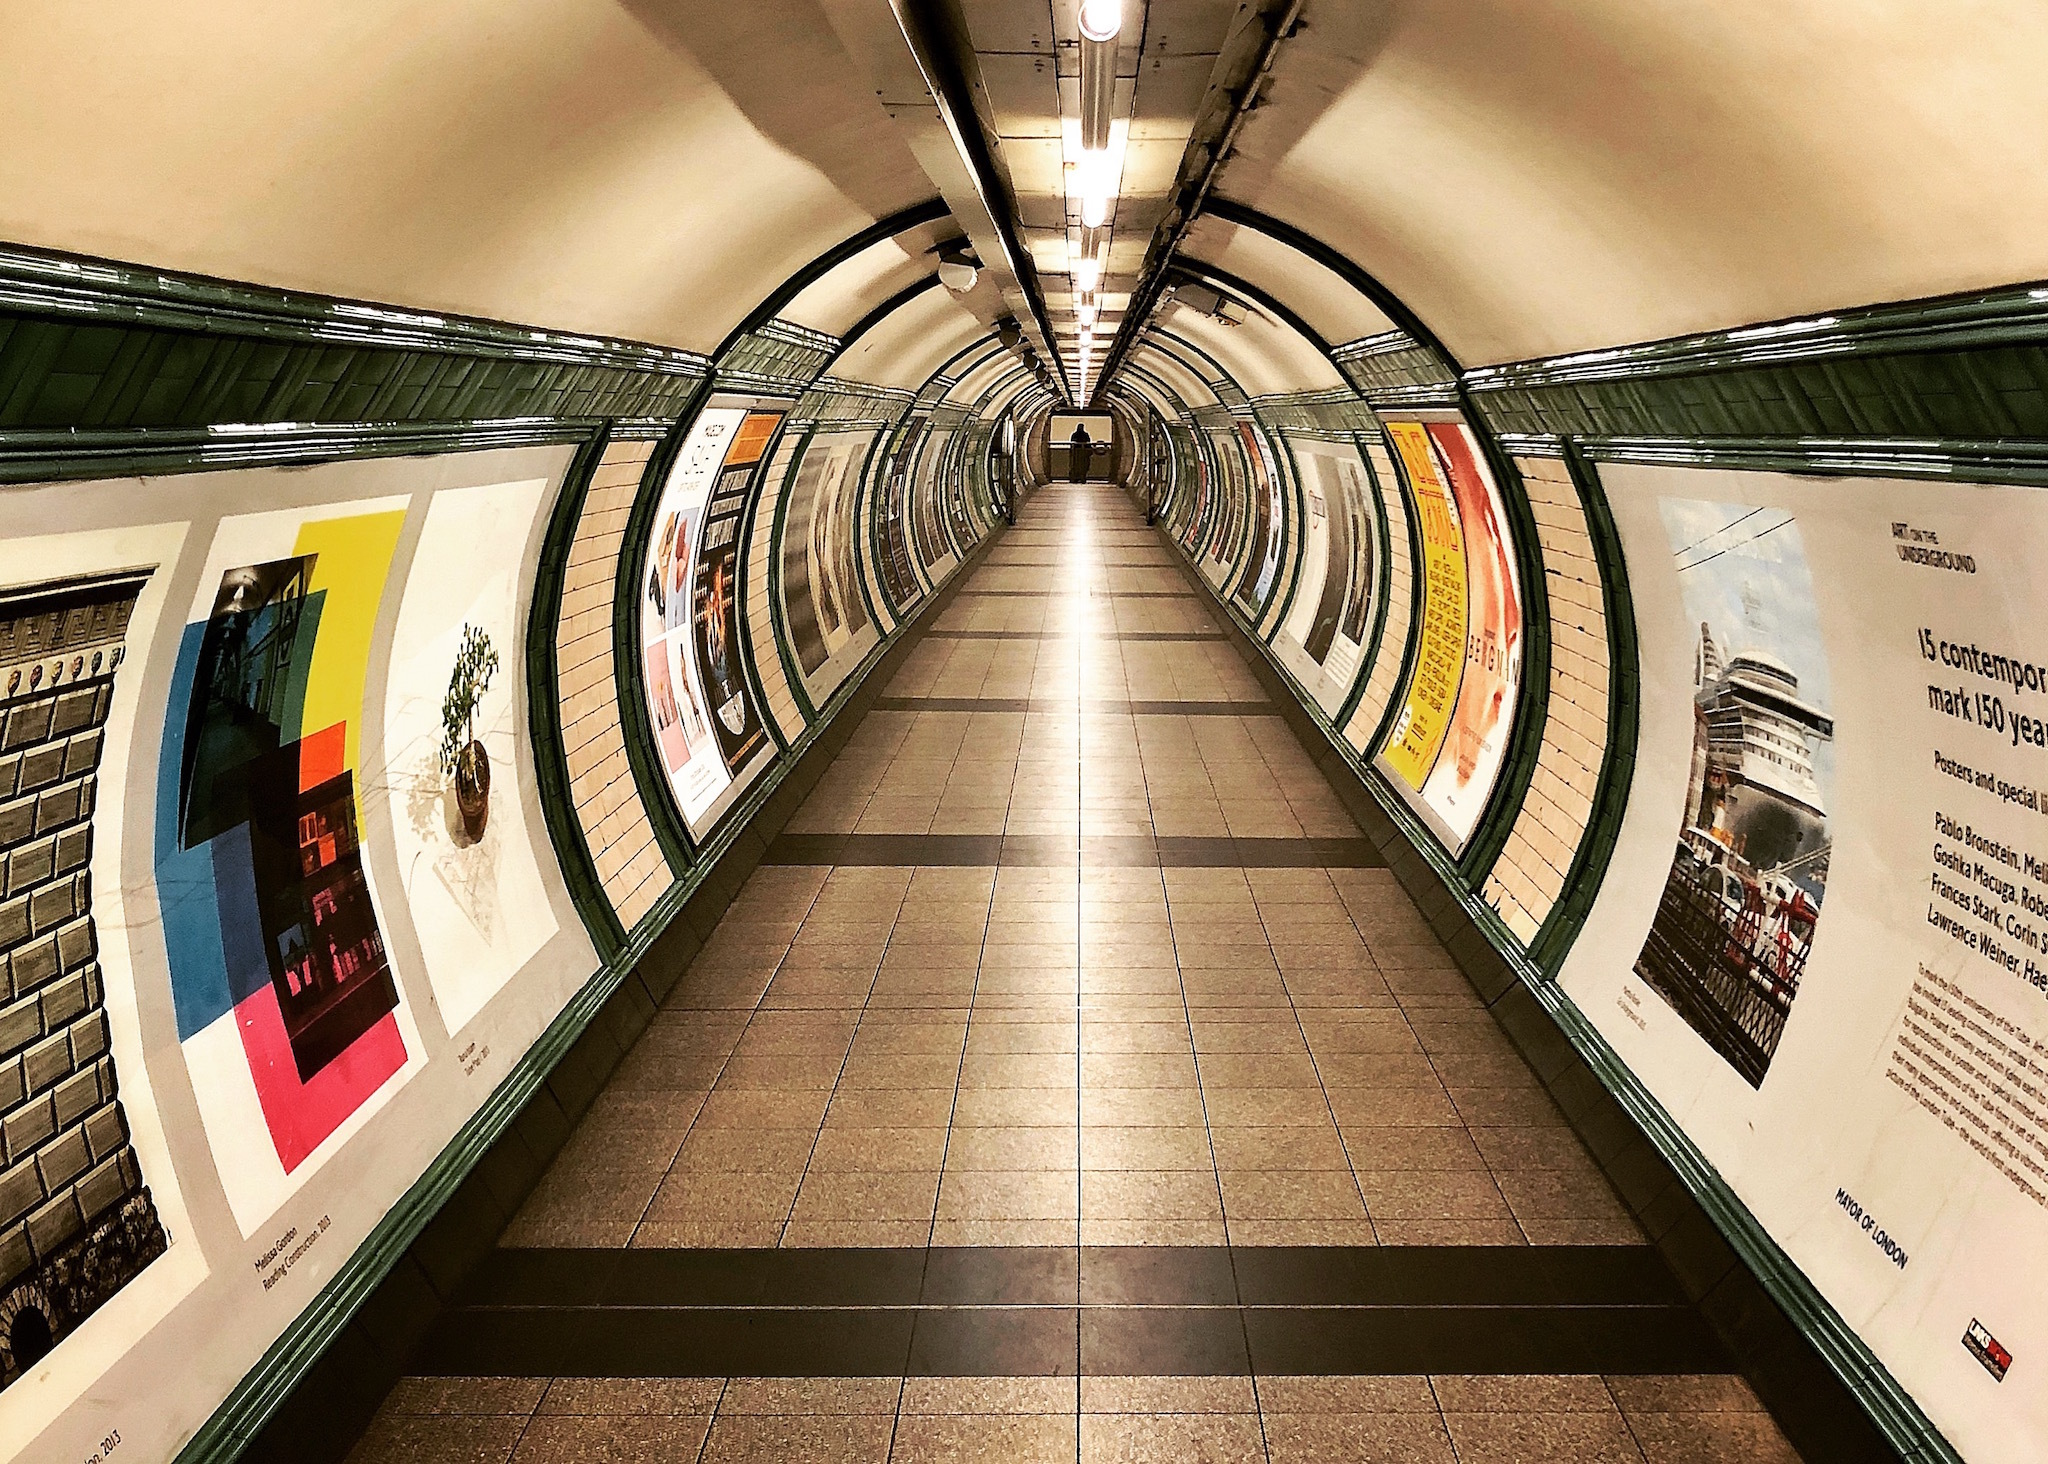 Embankment tube, Quiet London feature, TfL Night Owls campaign, tube